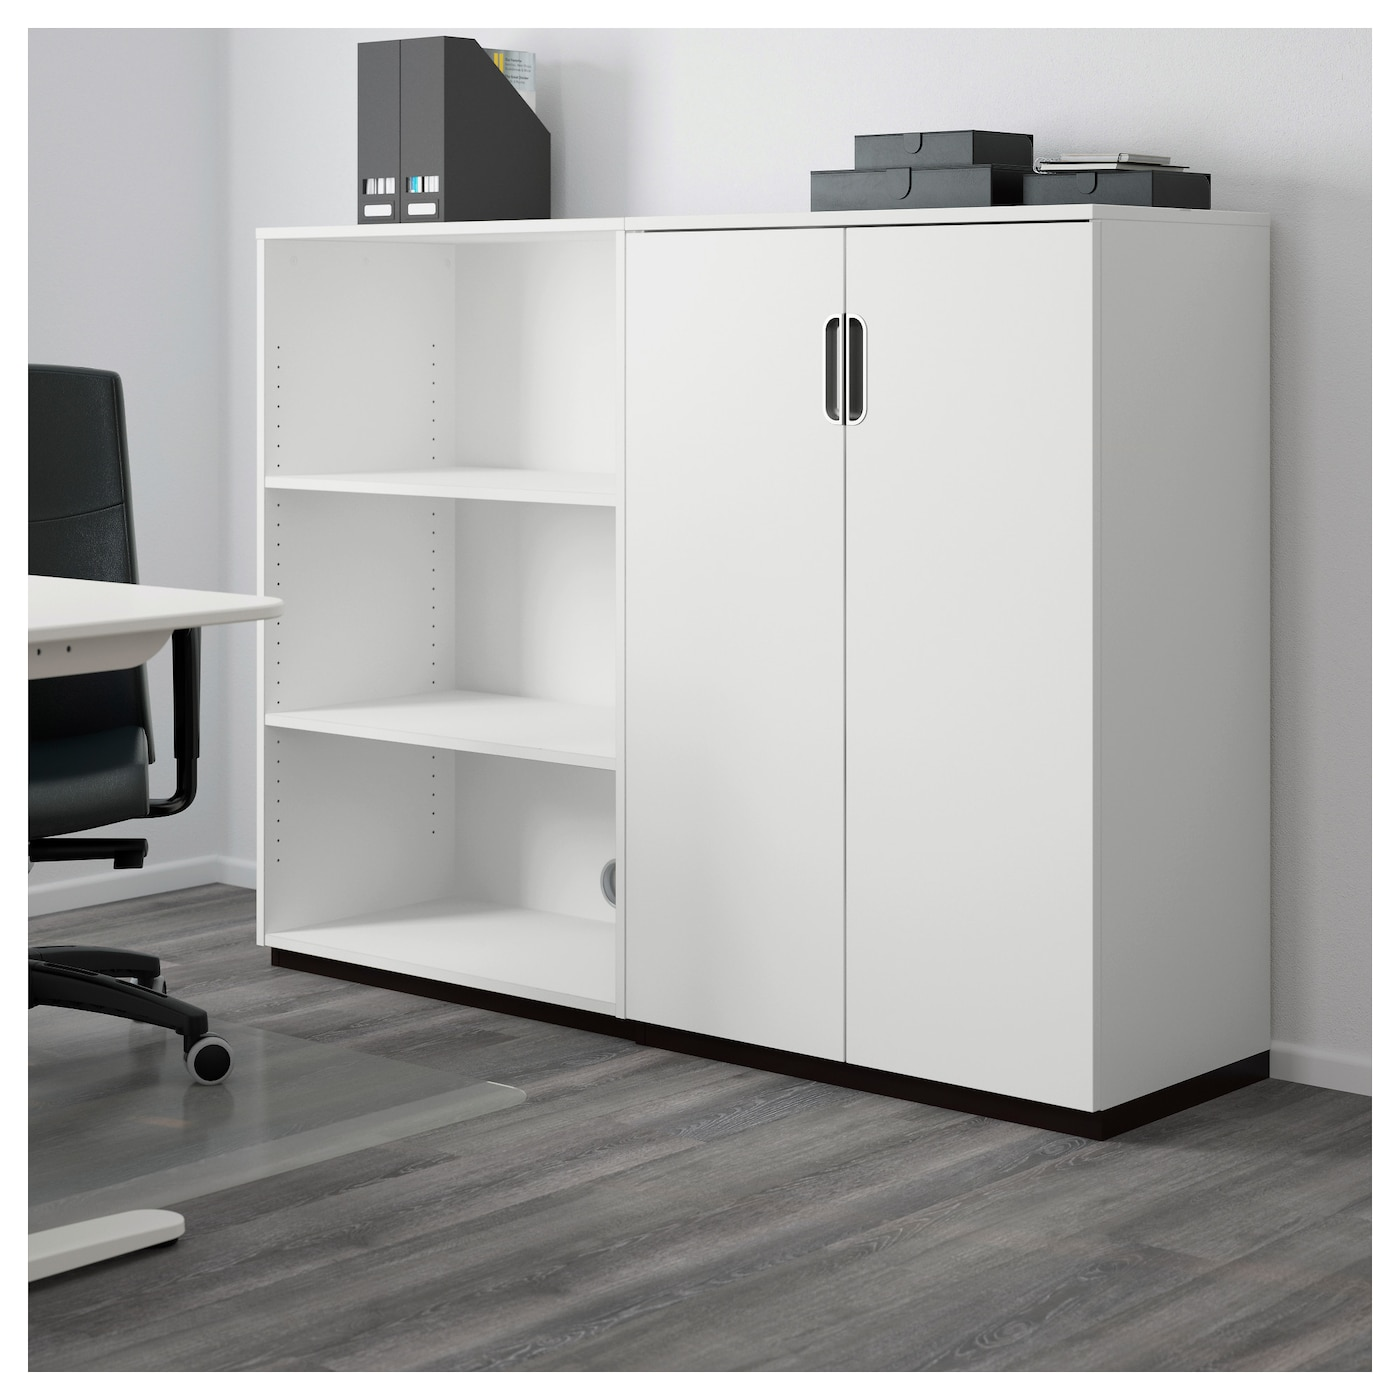 IKEA GALANT storage combination 10 year guarantee. Read about the terms in the guarantee brochure.